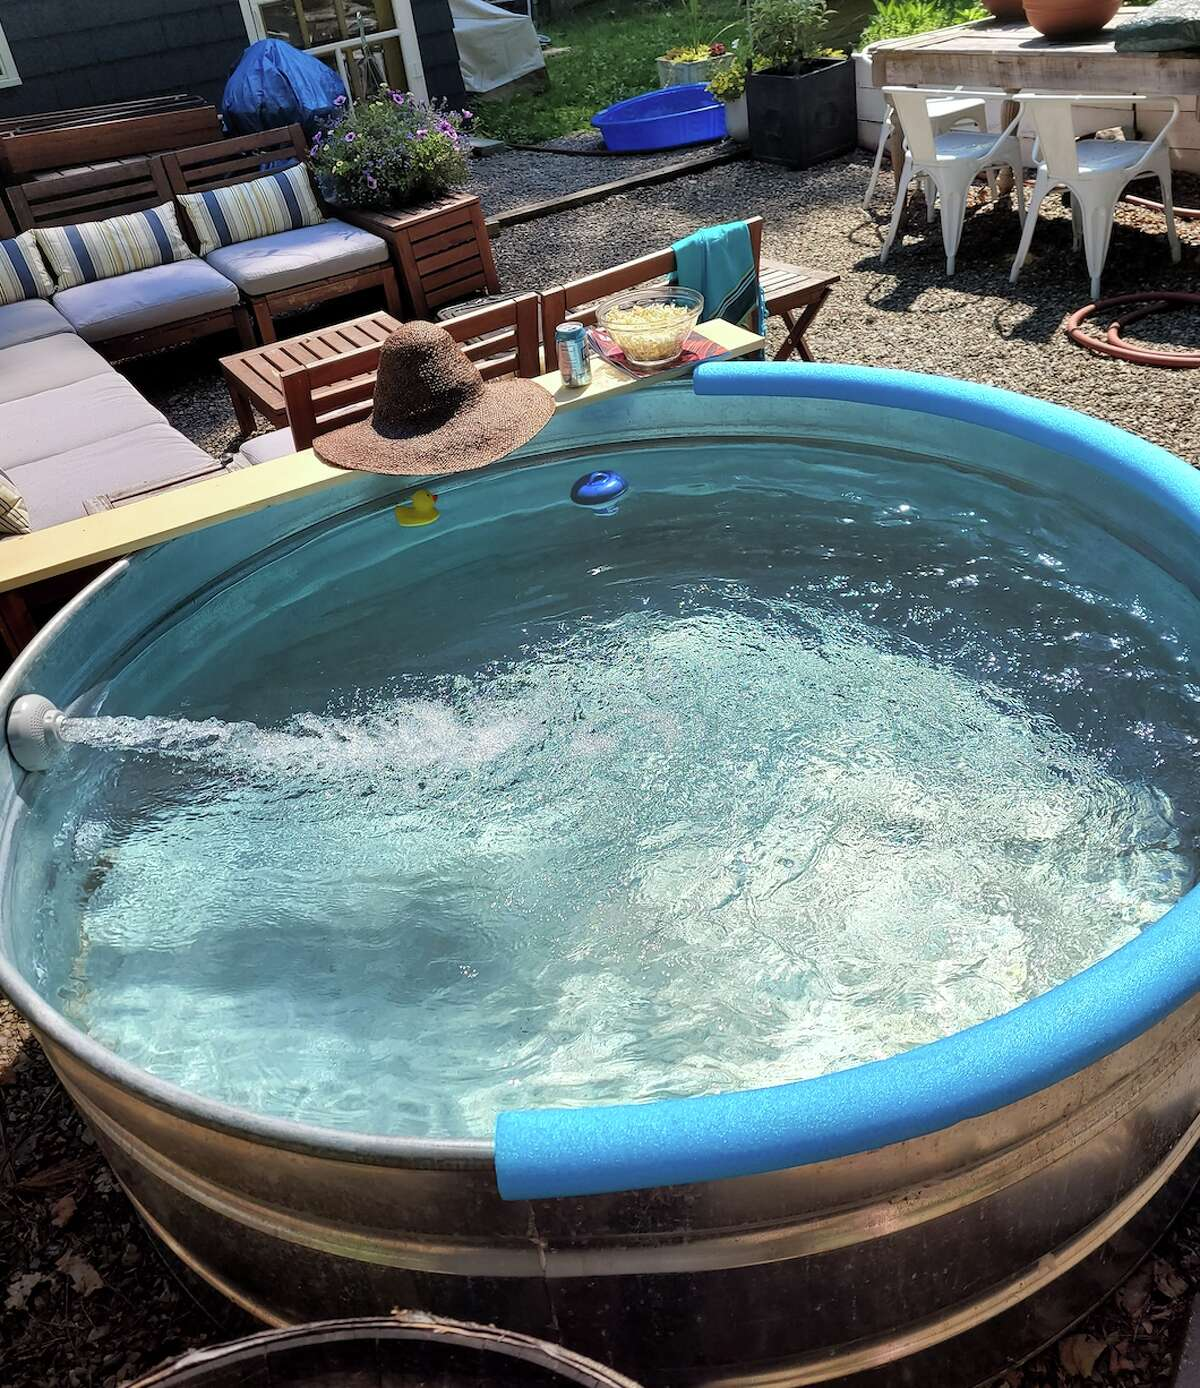 A stock tank pool can help beat the heat for a tiny fraction of the cost of an in-ground pool. DIY it by inserting a filter and pump to keep water clean and safe.